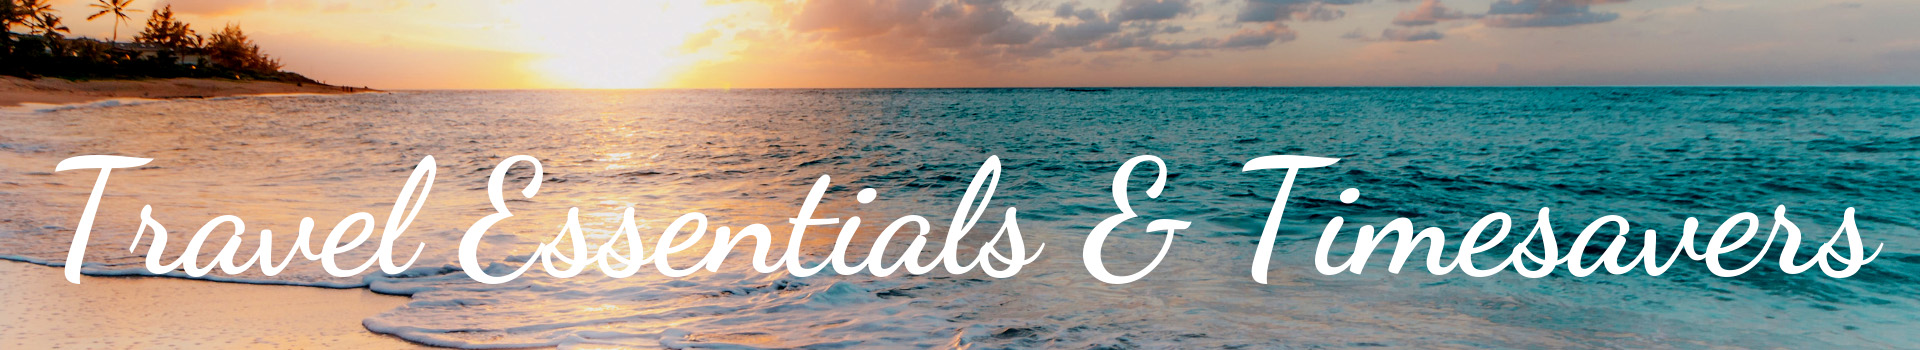 Blog header image for Travel Essentials and Timesavers page showing sunset from a beach over an ocean.